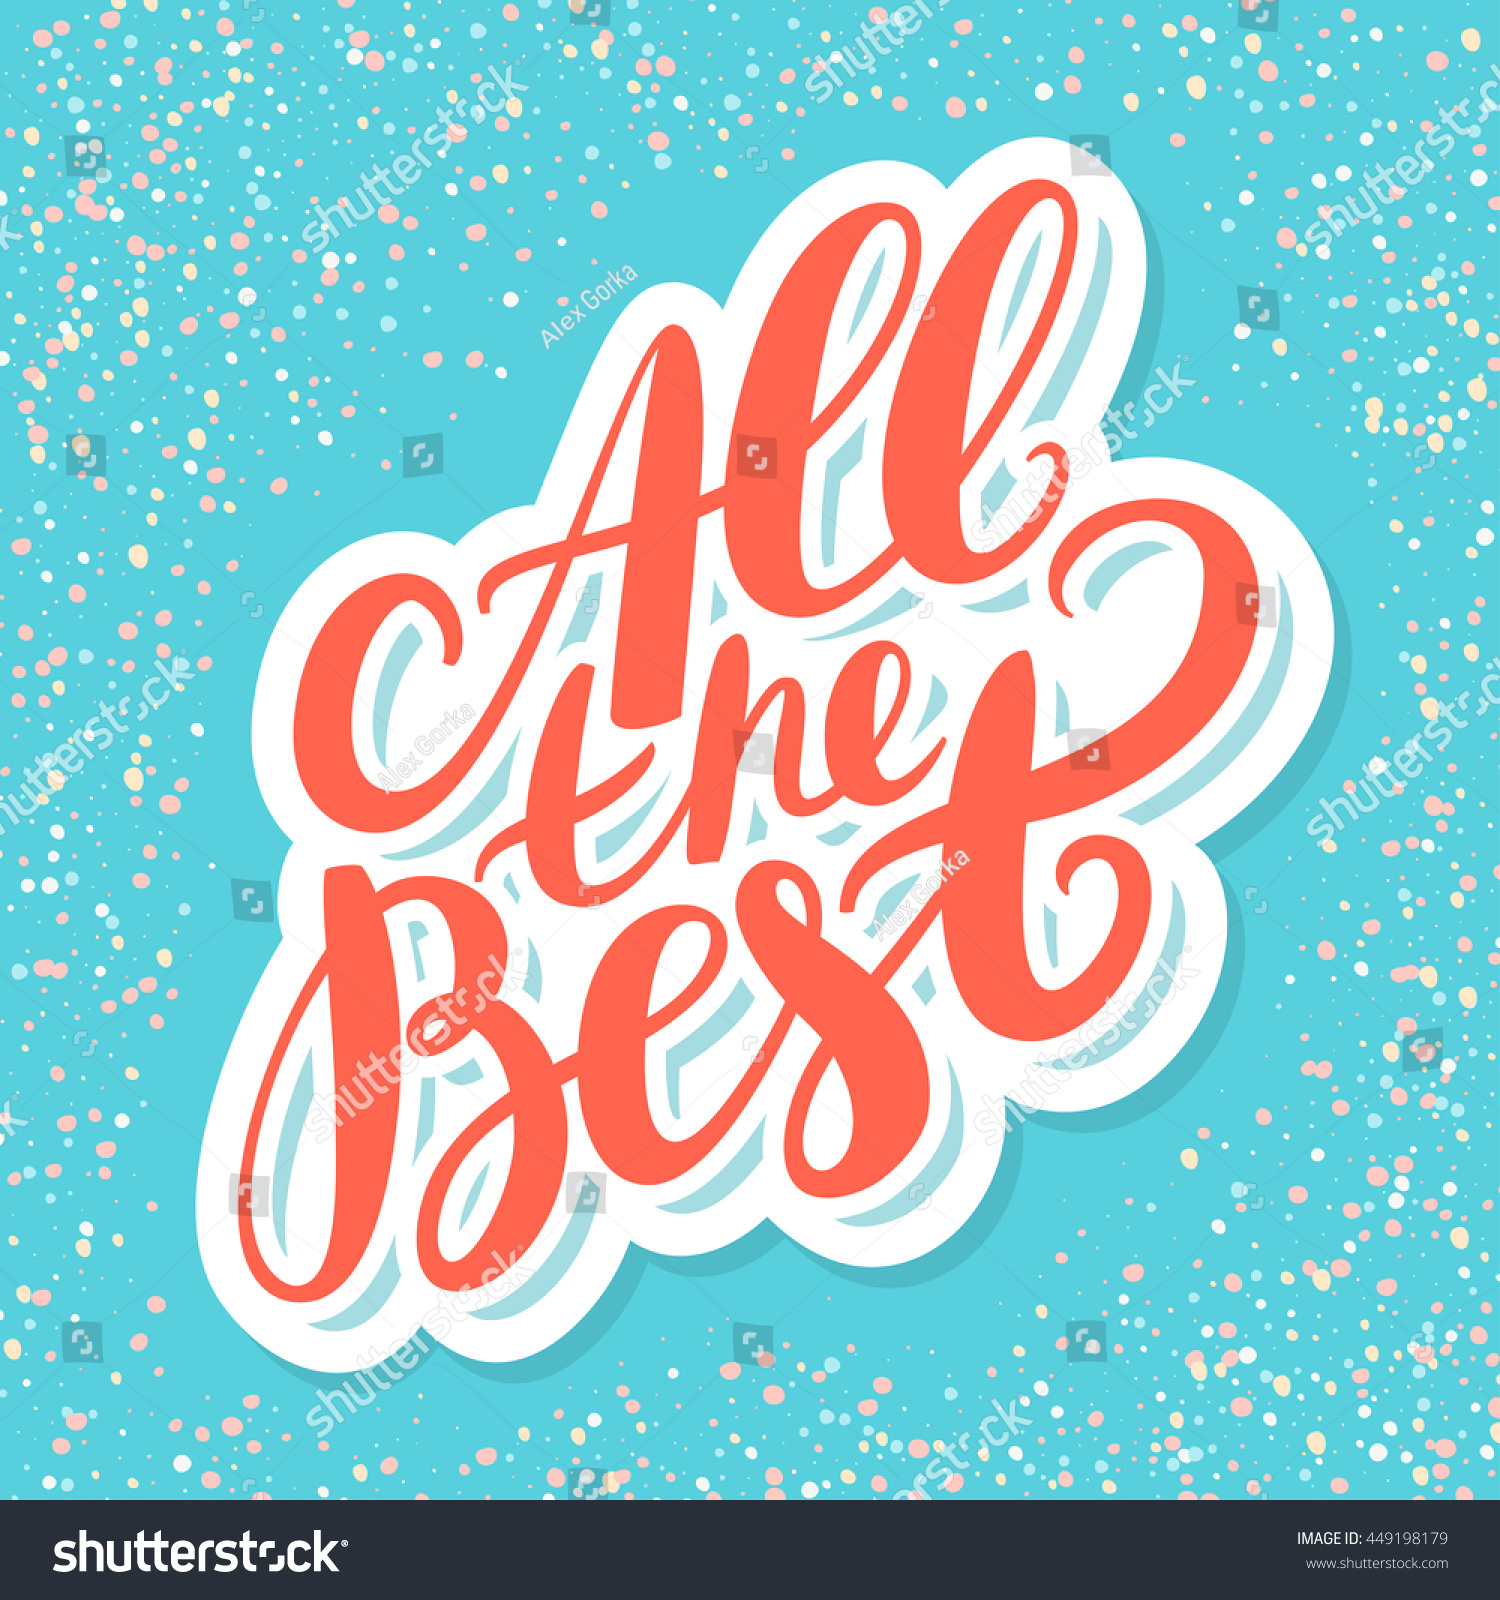 All the best farewell card stock vector illustration for All the very best images